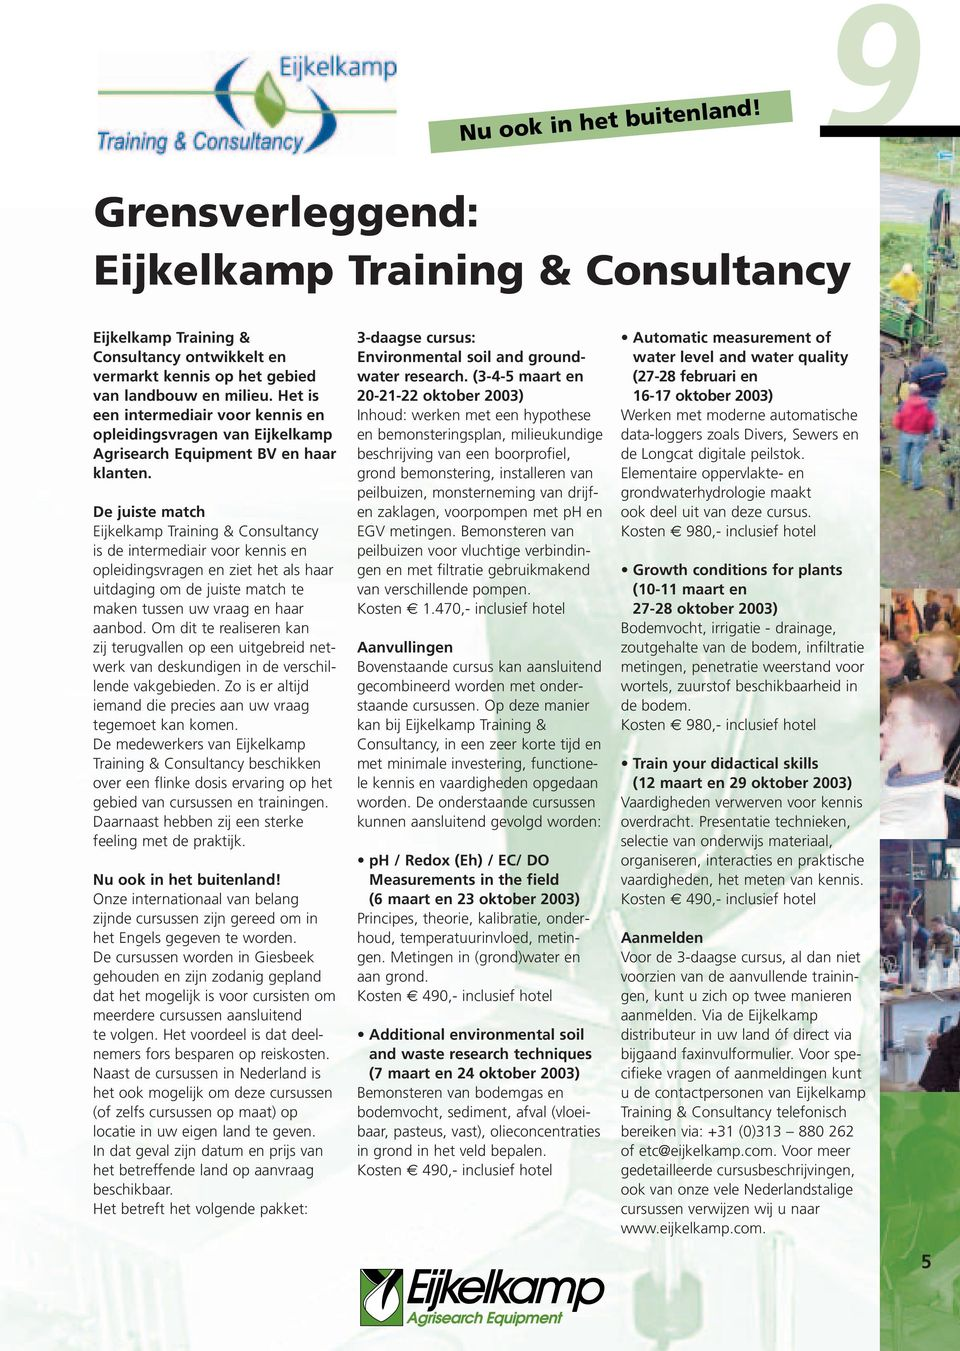 De juiste match Eijkelkamp Training & Consultancy is de intermediair voor kennis en opleidingsvragen en ziet het als haar uitdaging om de juiste match te maken tussen uw vraag en haar aanbod.